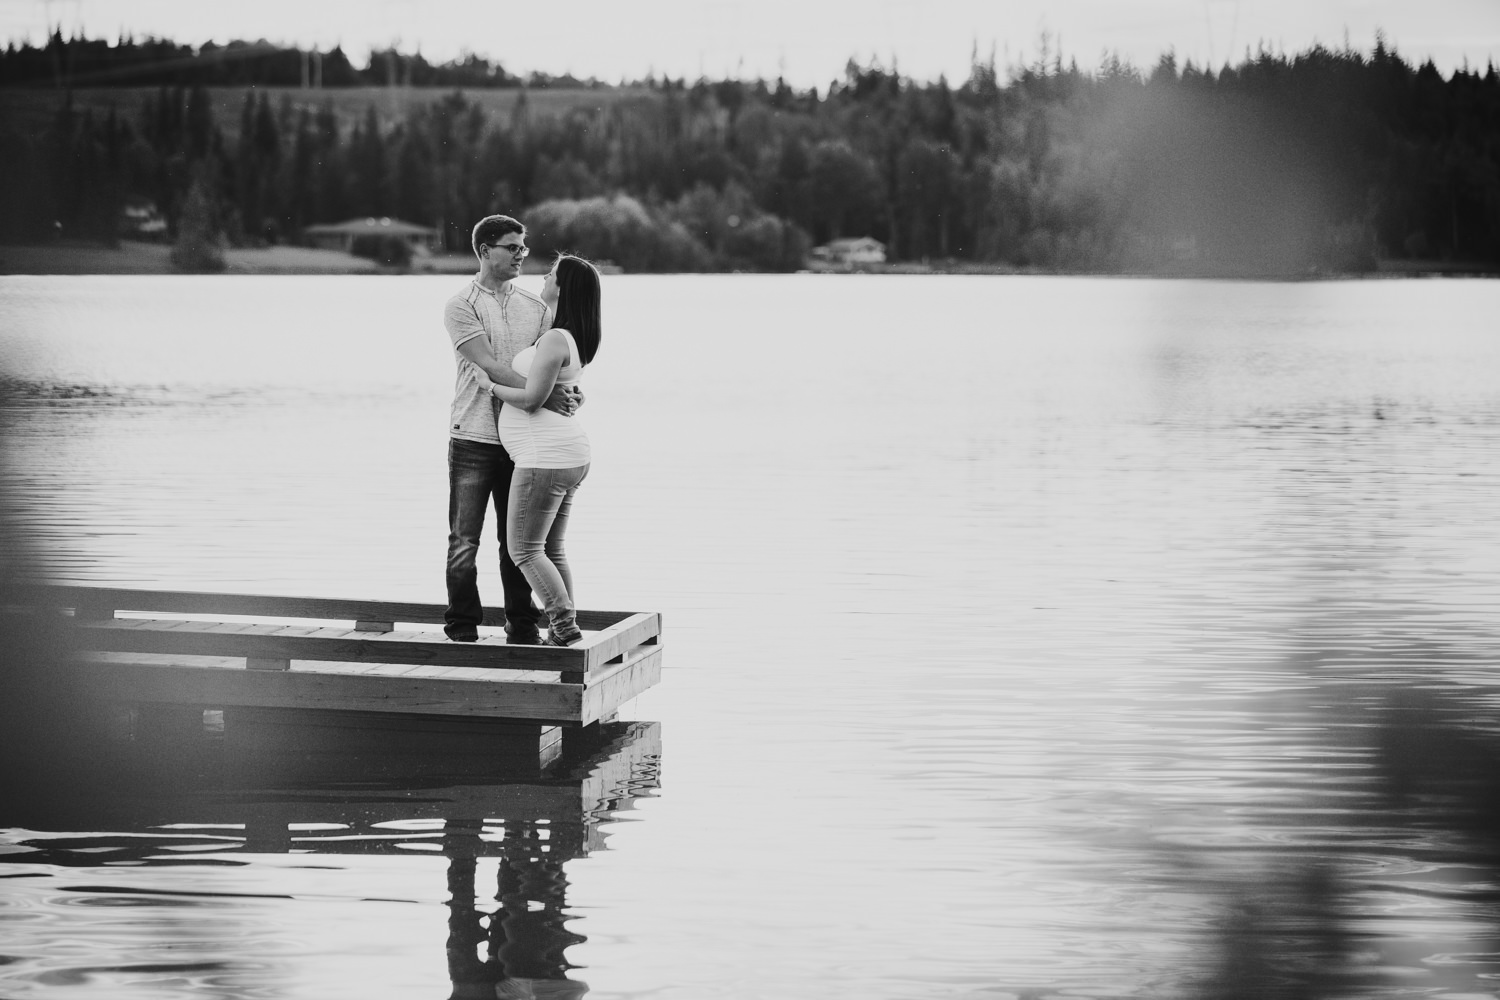 quesnel-bc-ten-mile-lake-maternity-session-quesnel-maternity-photographer-kelowna-maternity-photographers-okanagan-meternity-photographer (31 of 32).jpg